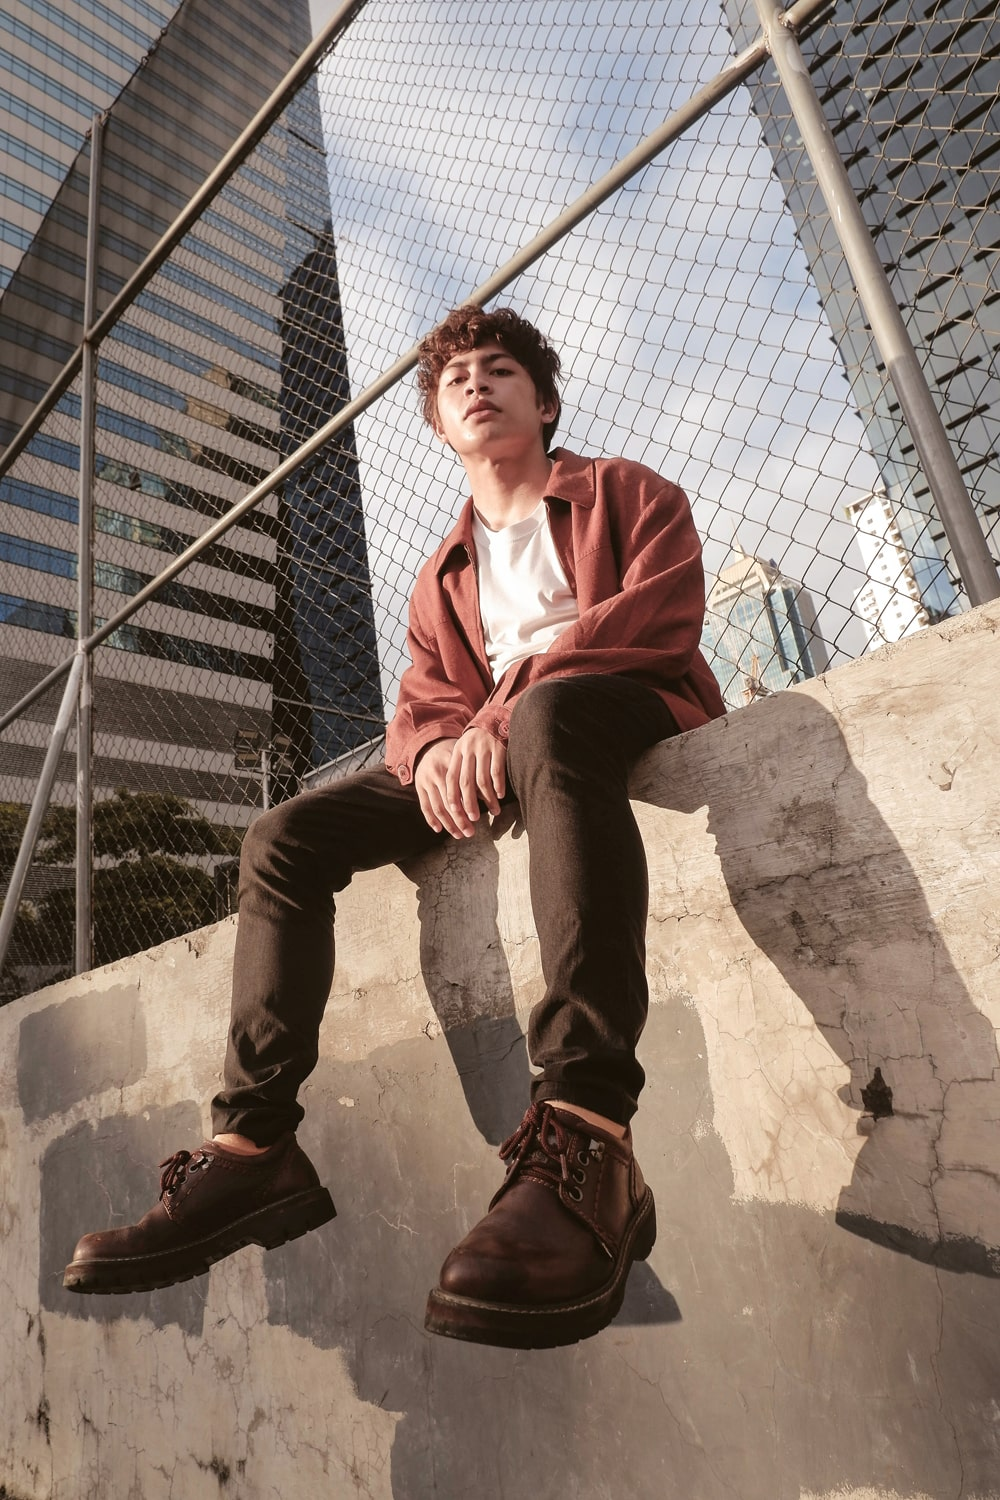 Young man sitting on wall before a fence looking in the camera with a serious face